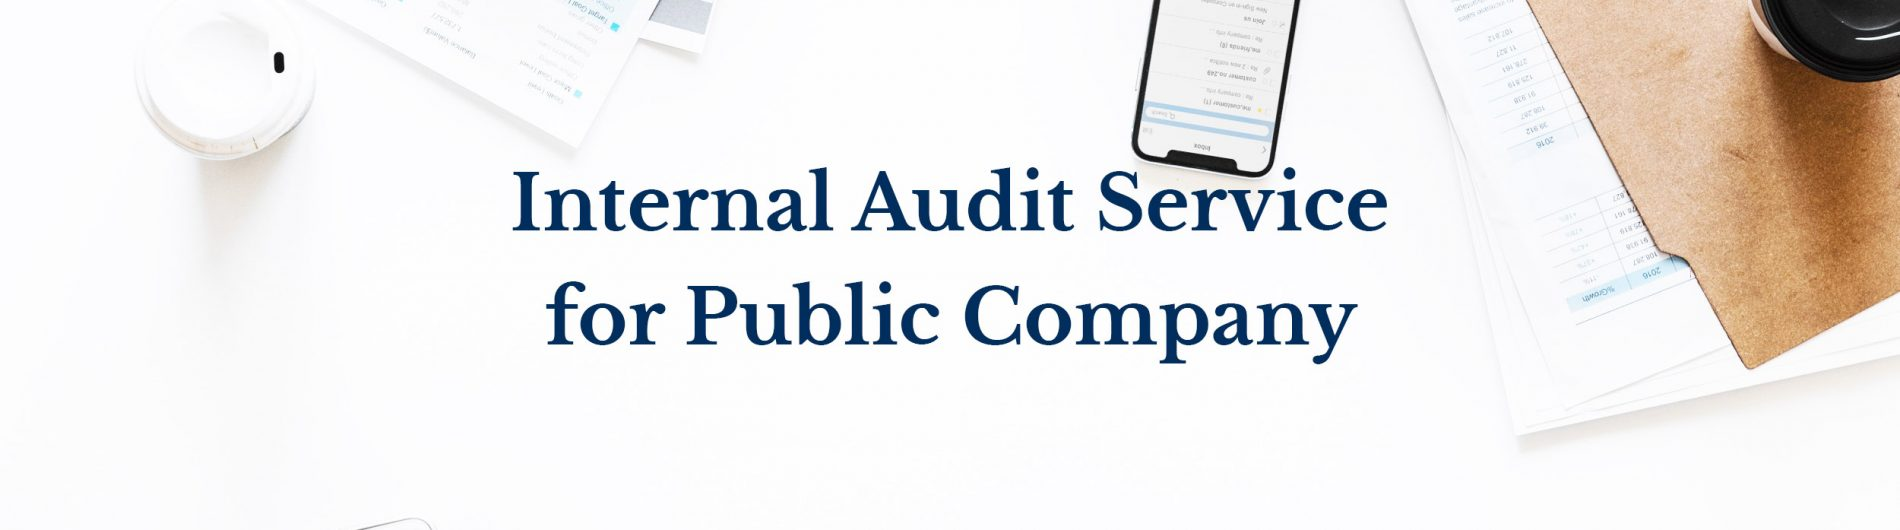 1 Internal Audit Service